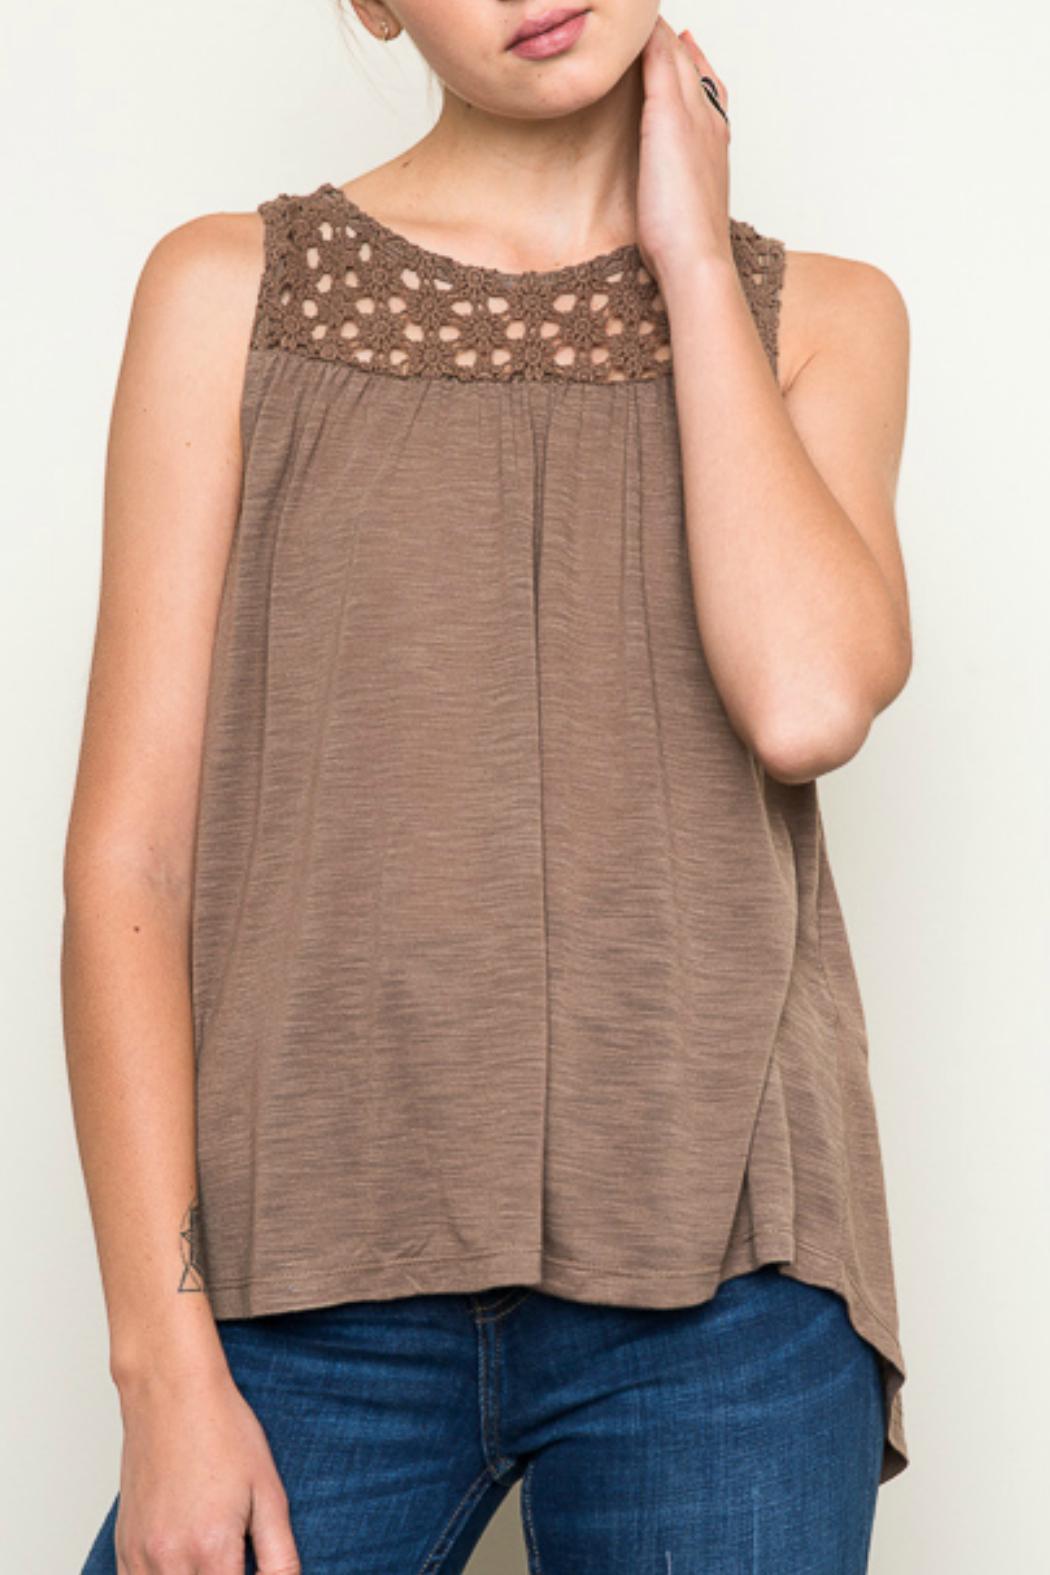 Find great deals on eBay for brown tank top. Shop with confidence.